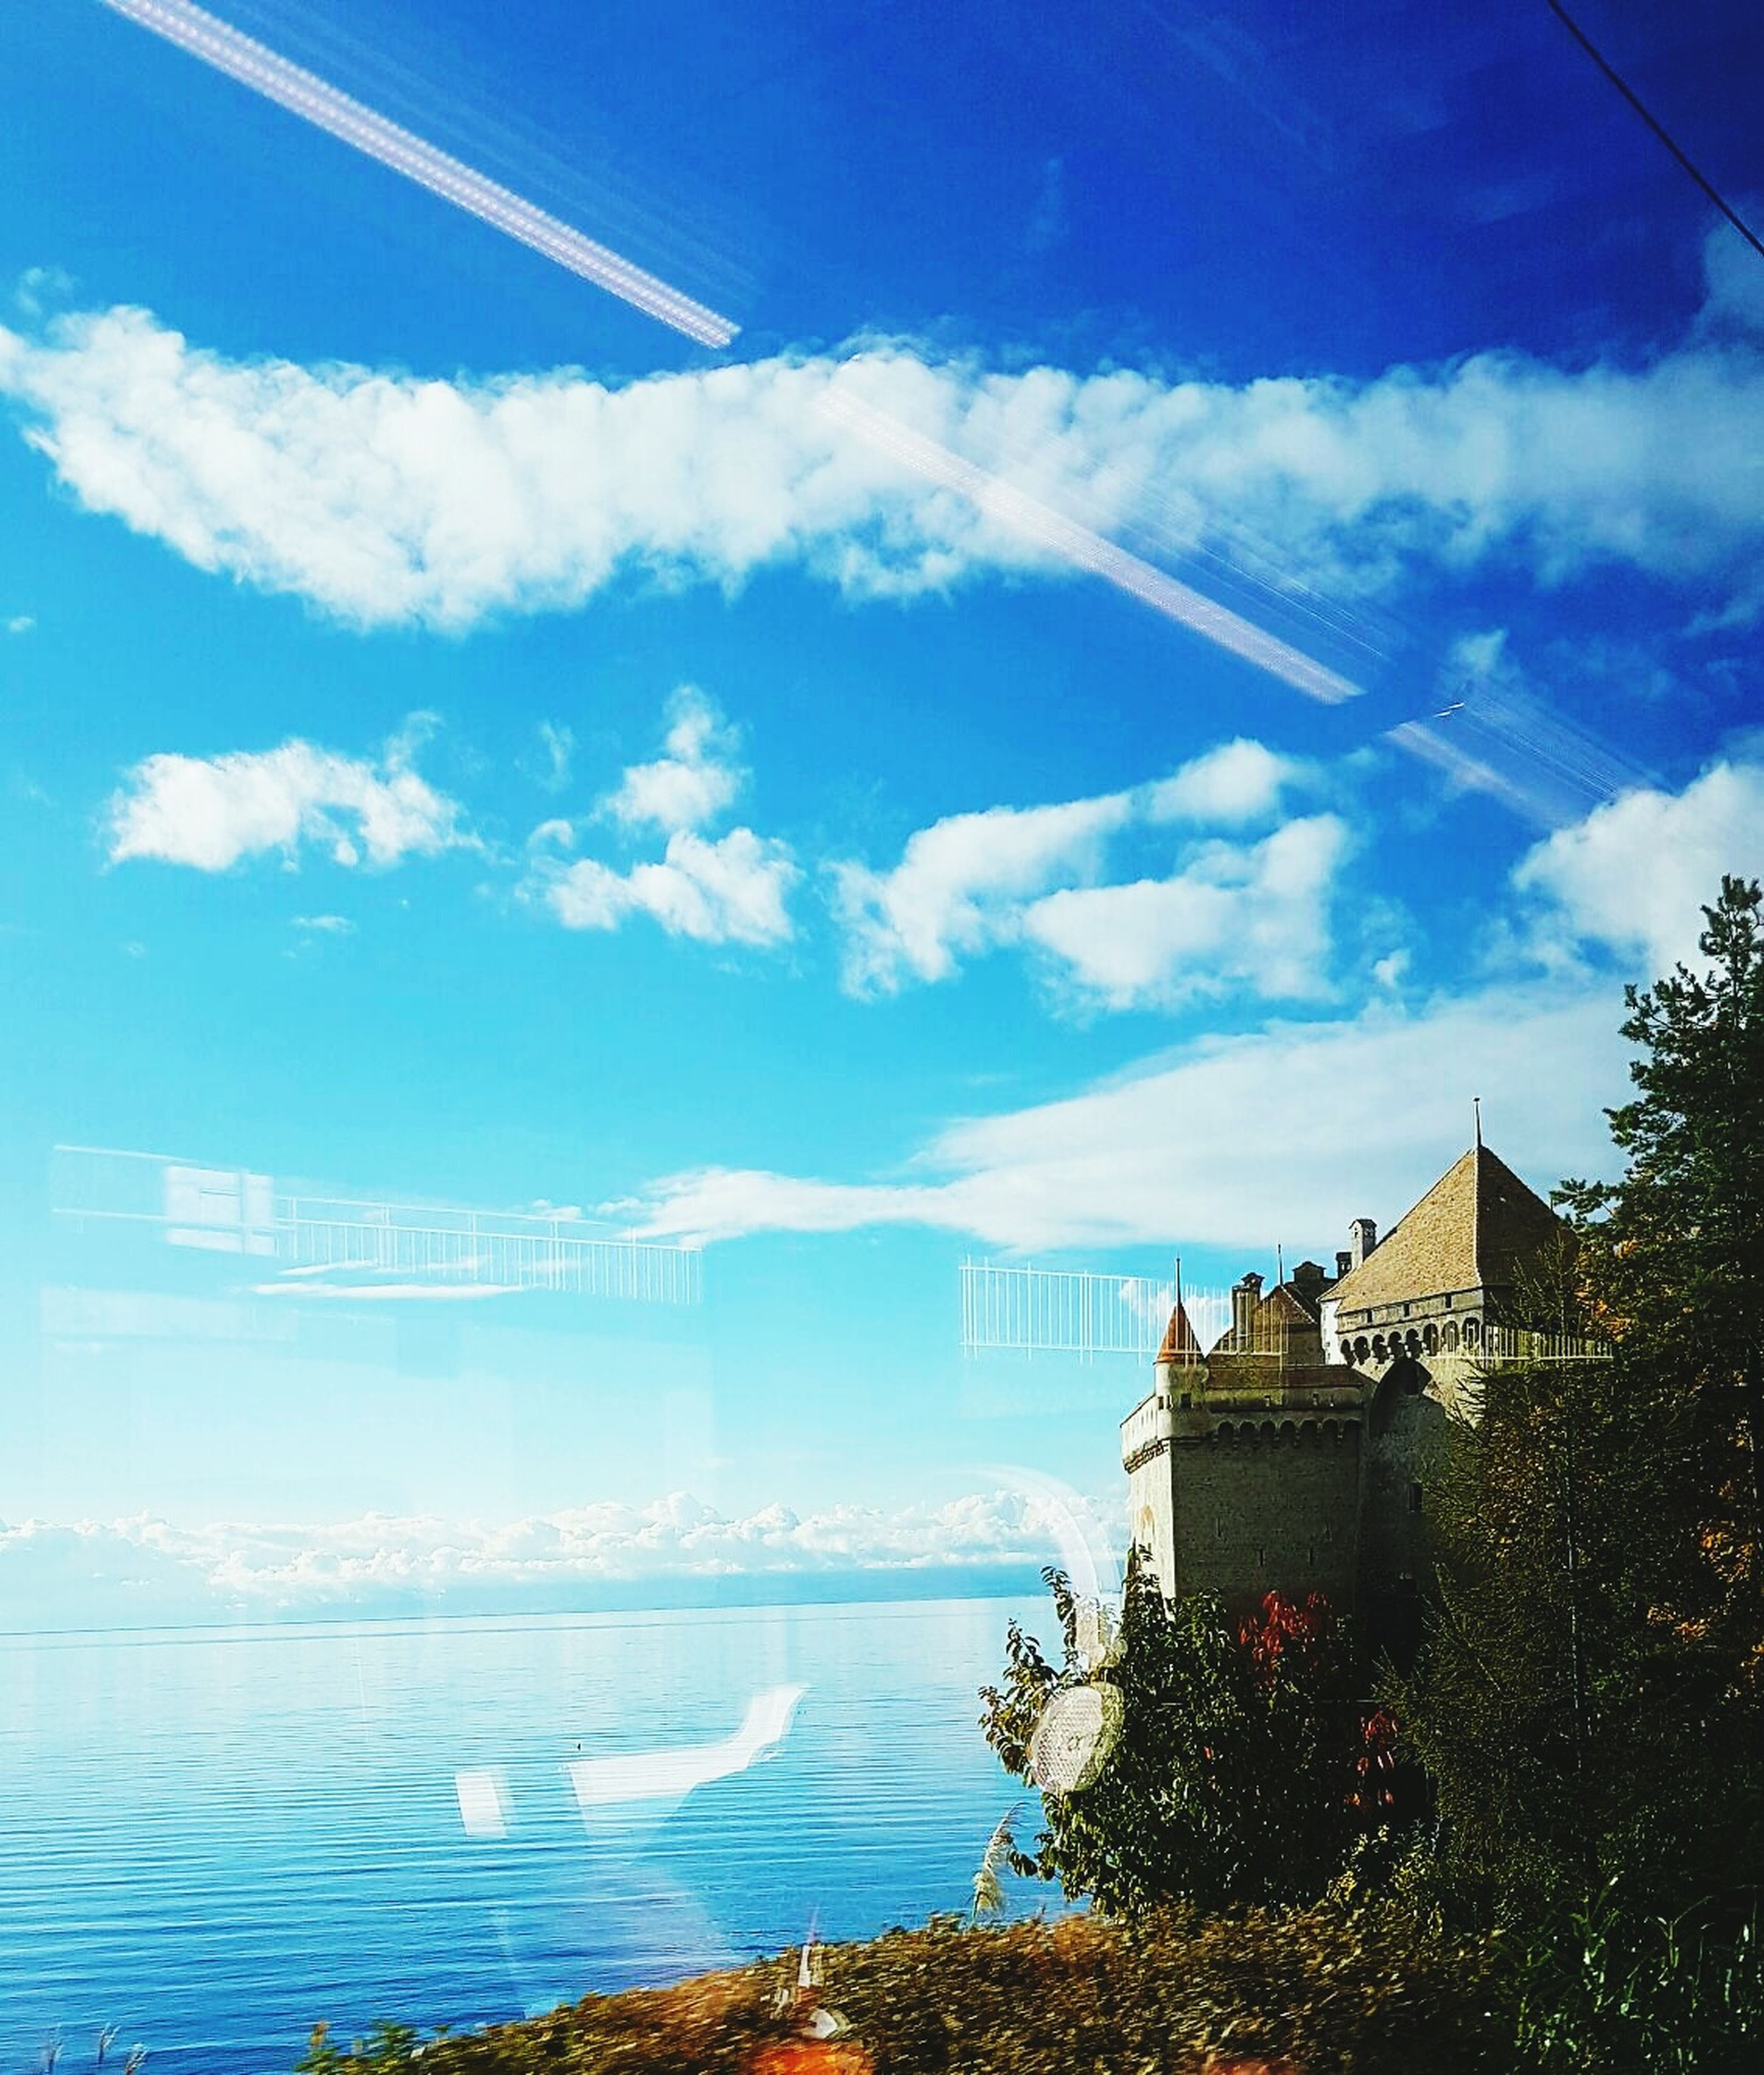 sky, blue, building exterior, cloud - sky, built structure, architecture, water, sea, outdoors, city, nature, no people, day, scenics, urban skyline, beauty in nature, skyscraper, beach, tree, cityscape, yacht